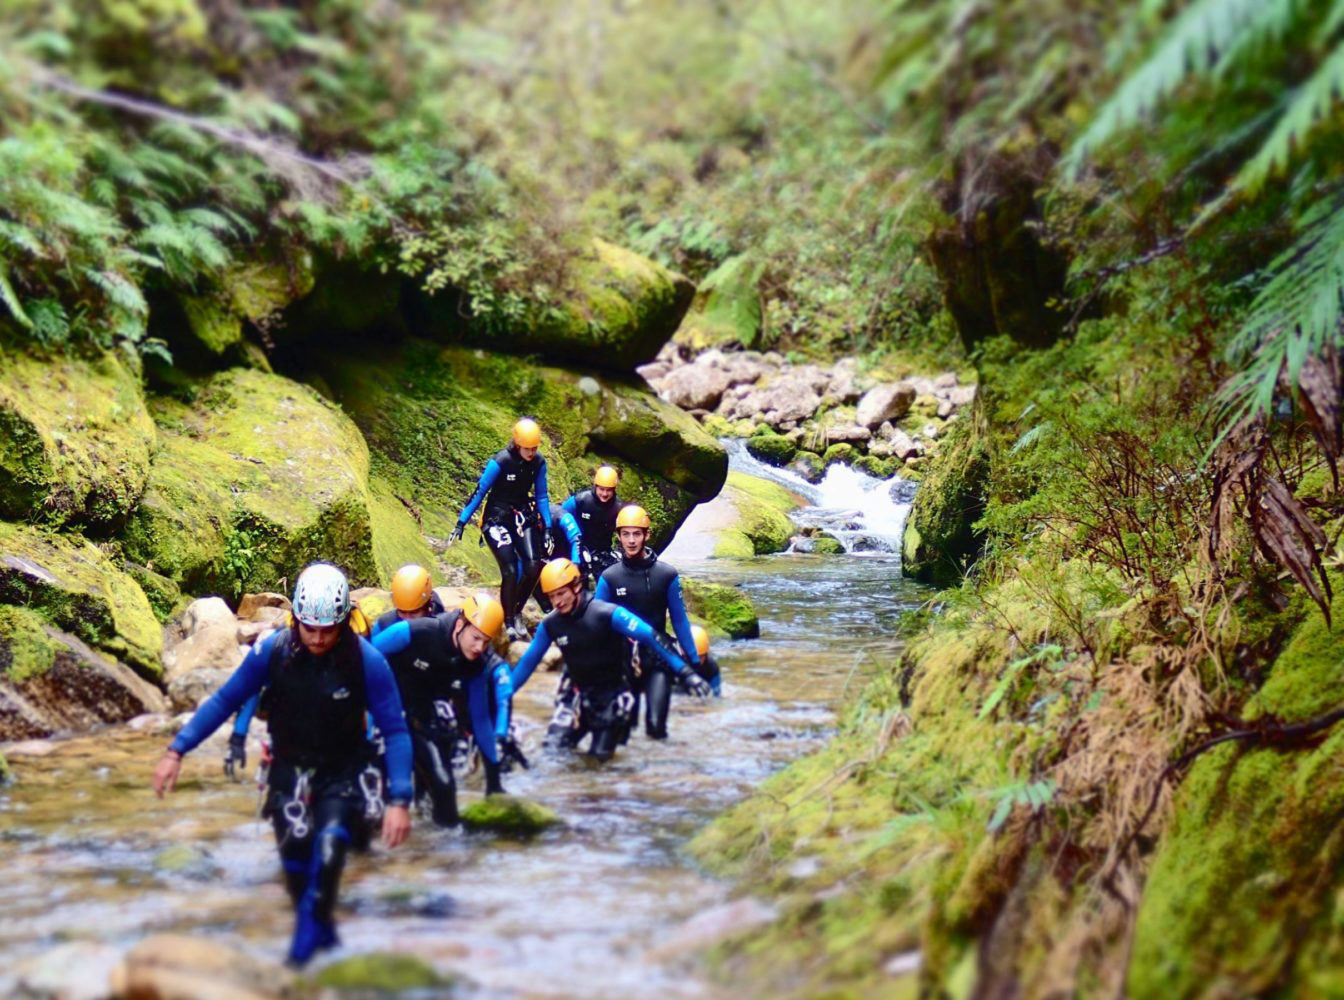 Riding the Slots: Canyoning in Abel Tasman National Park